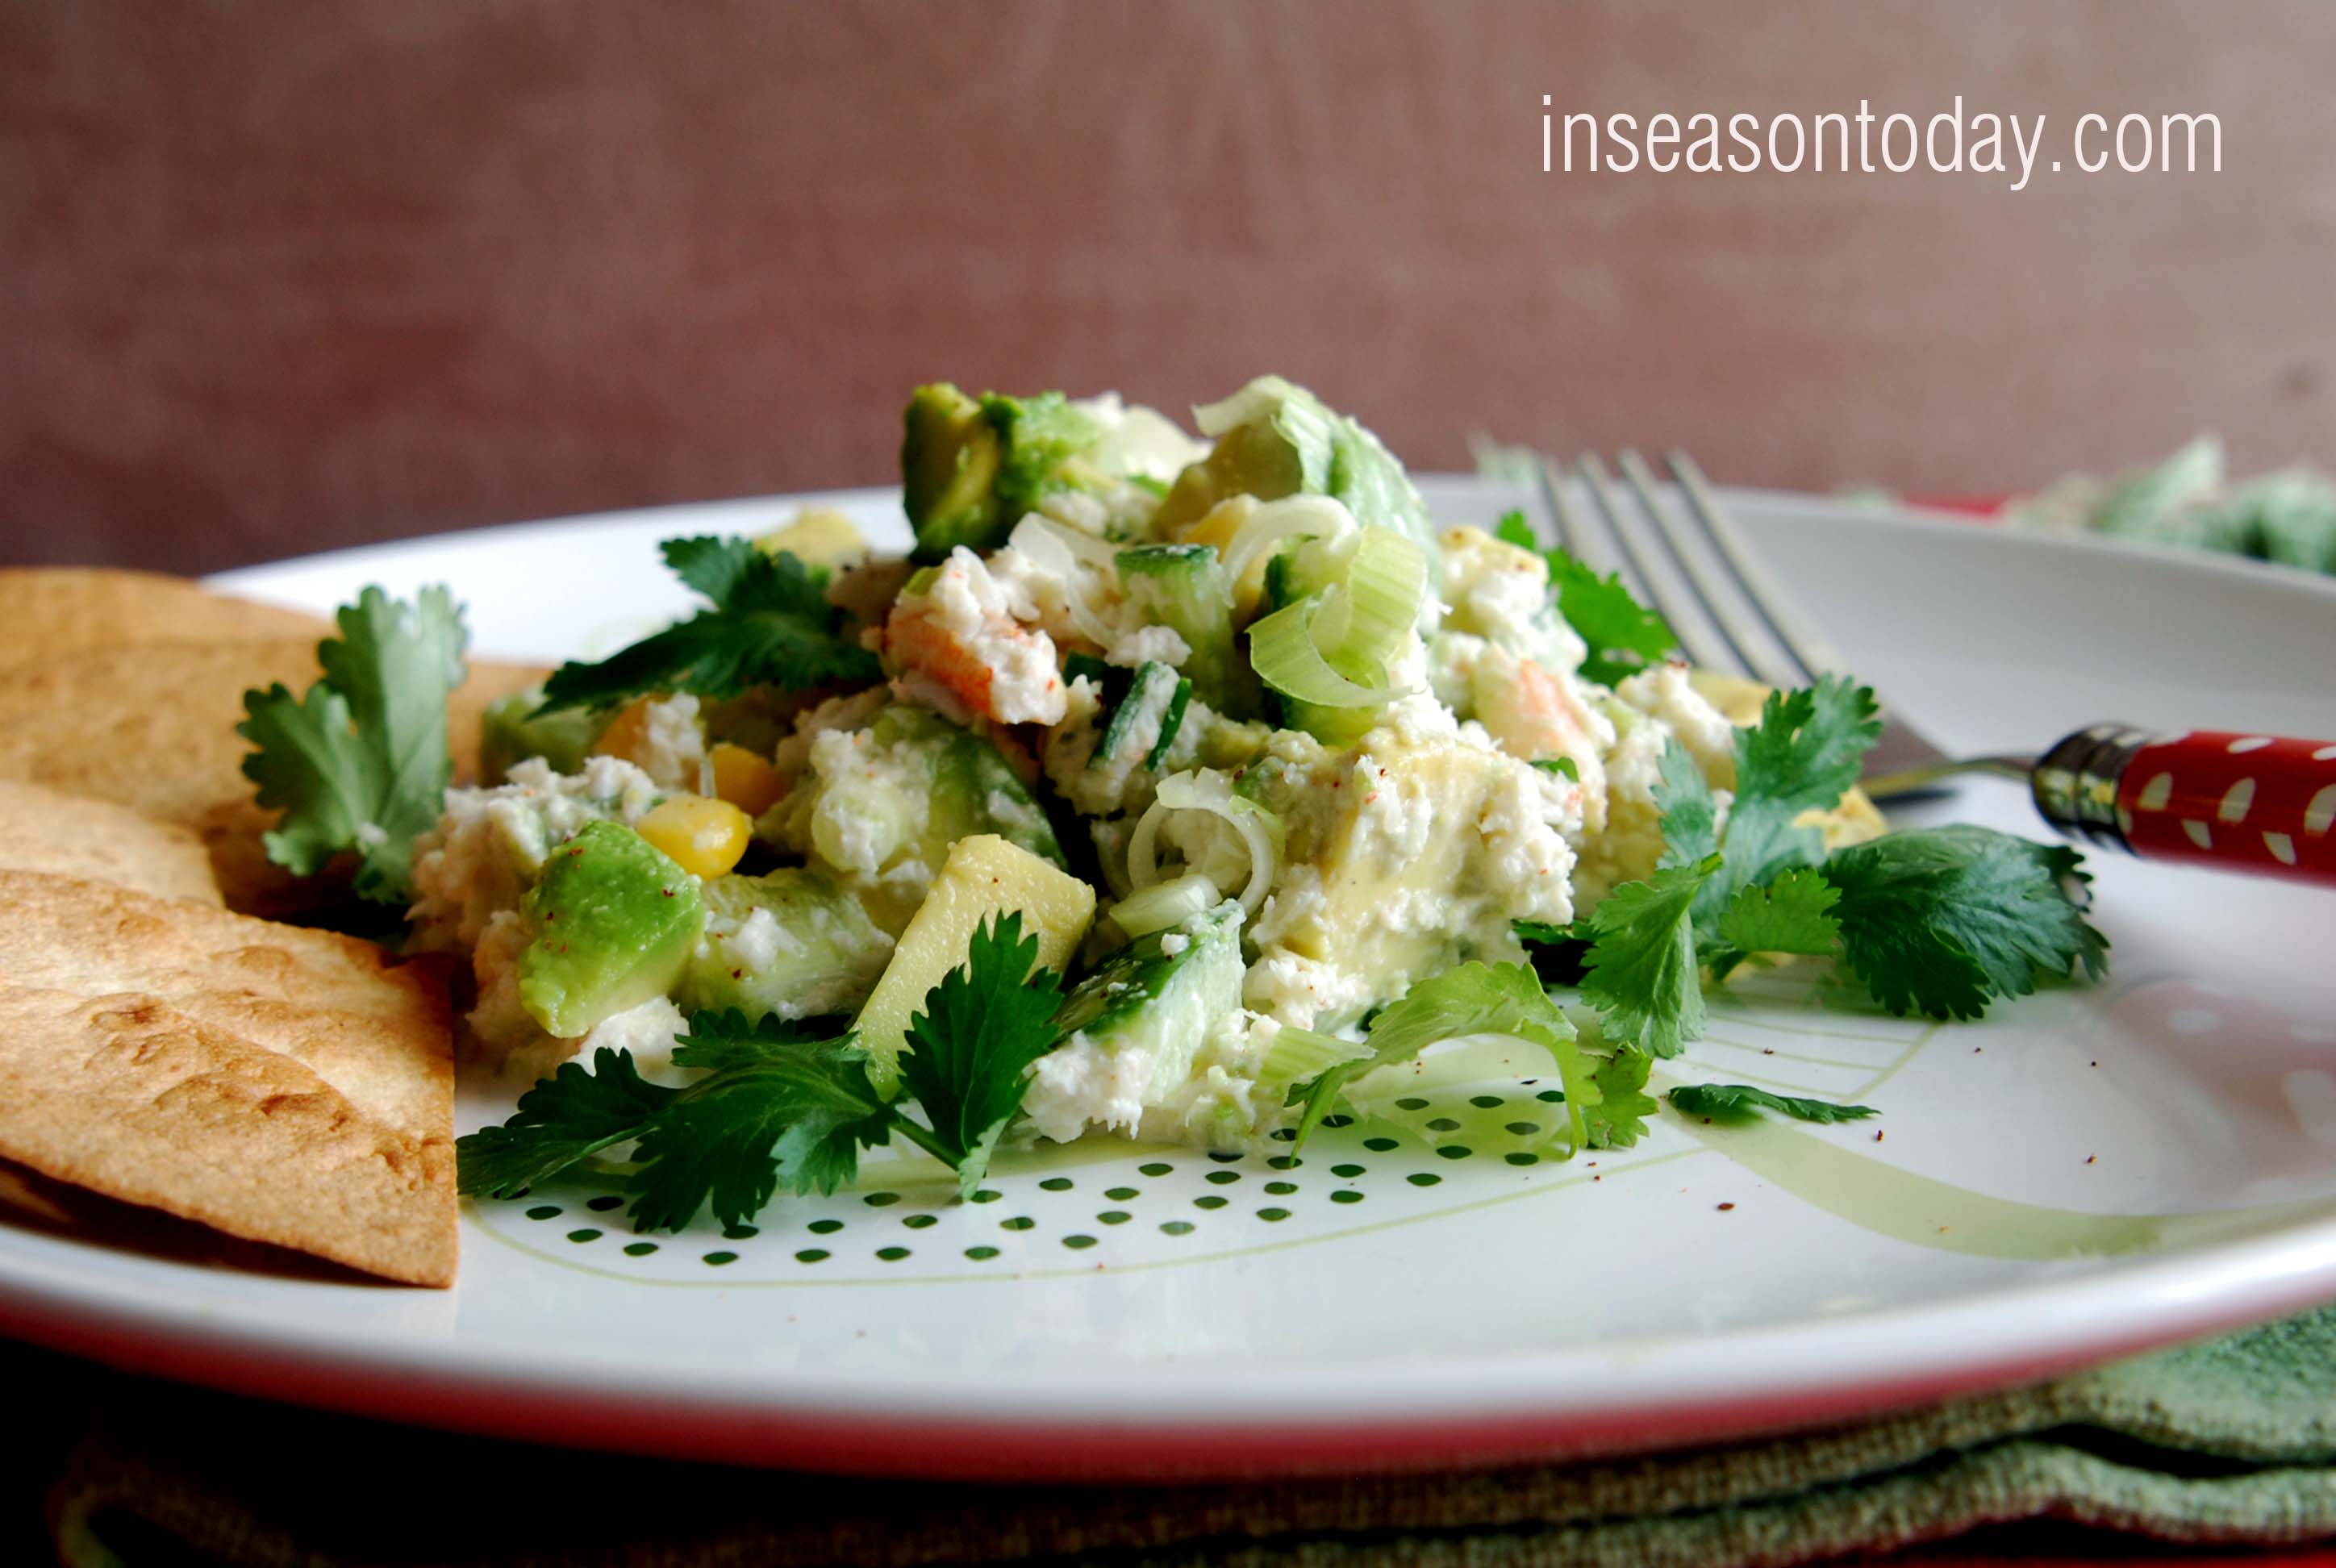 Creamy Avocado and Crab Salad With Toasted Tortillas 2